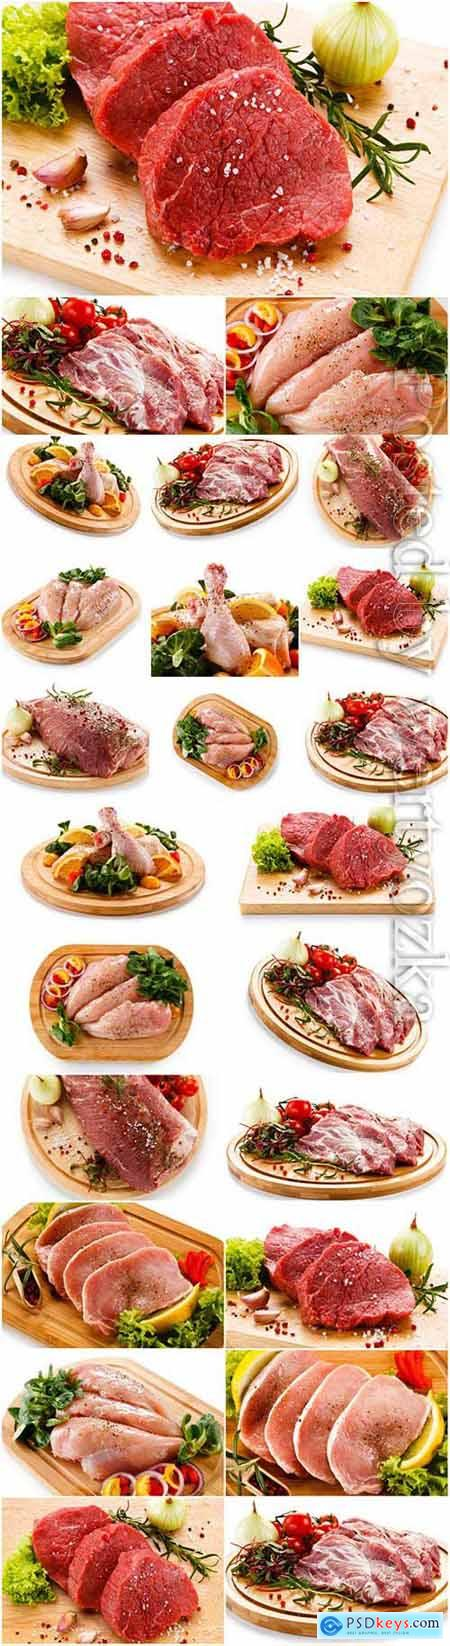 Meat vegetables and spices stock photo